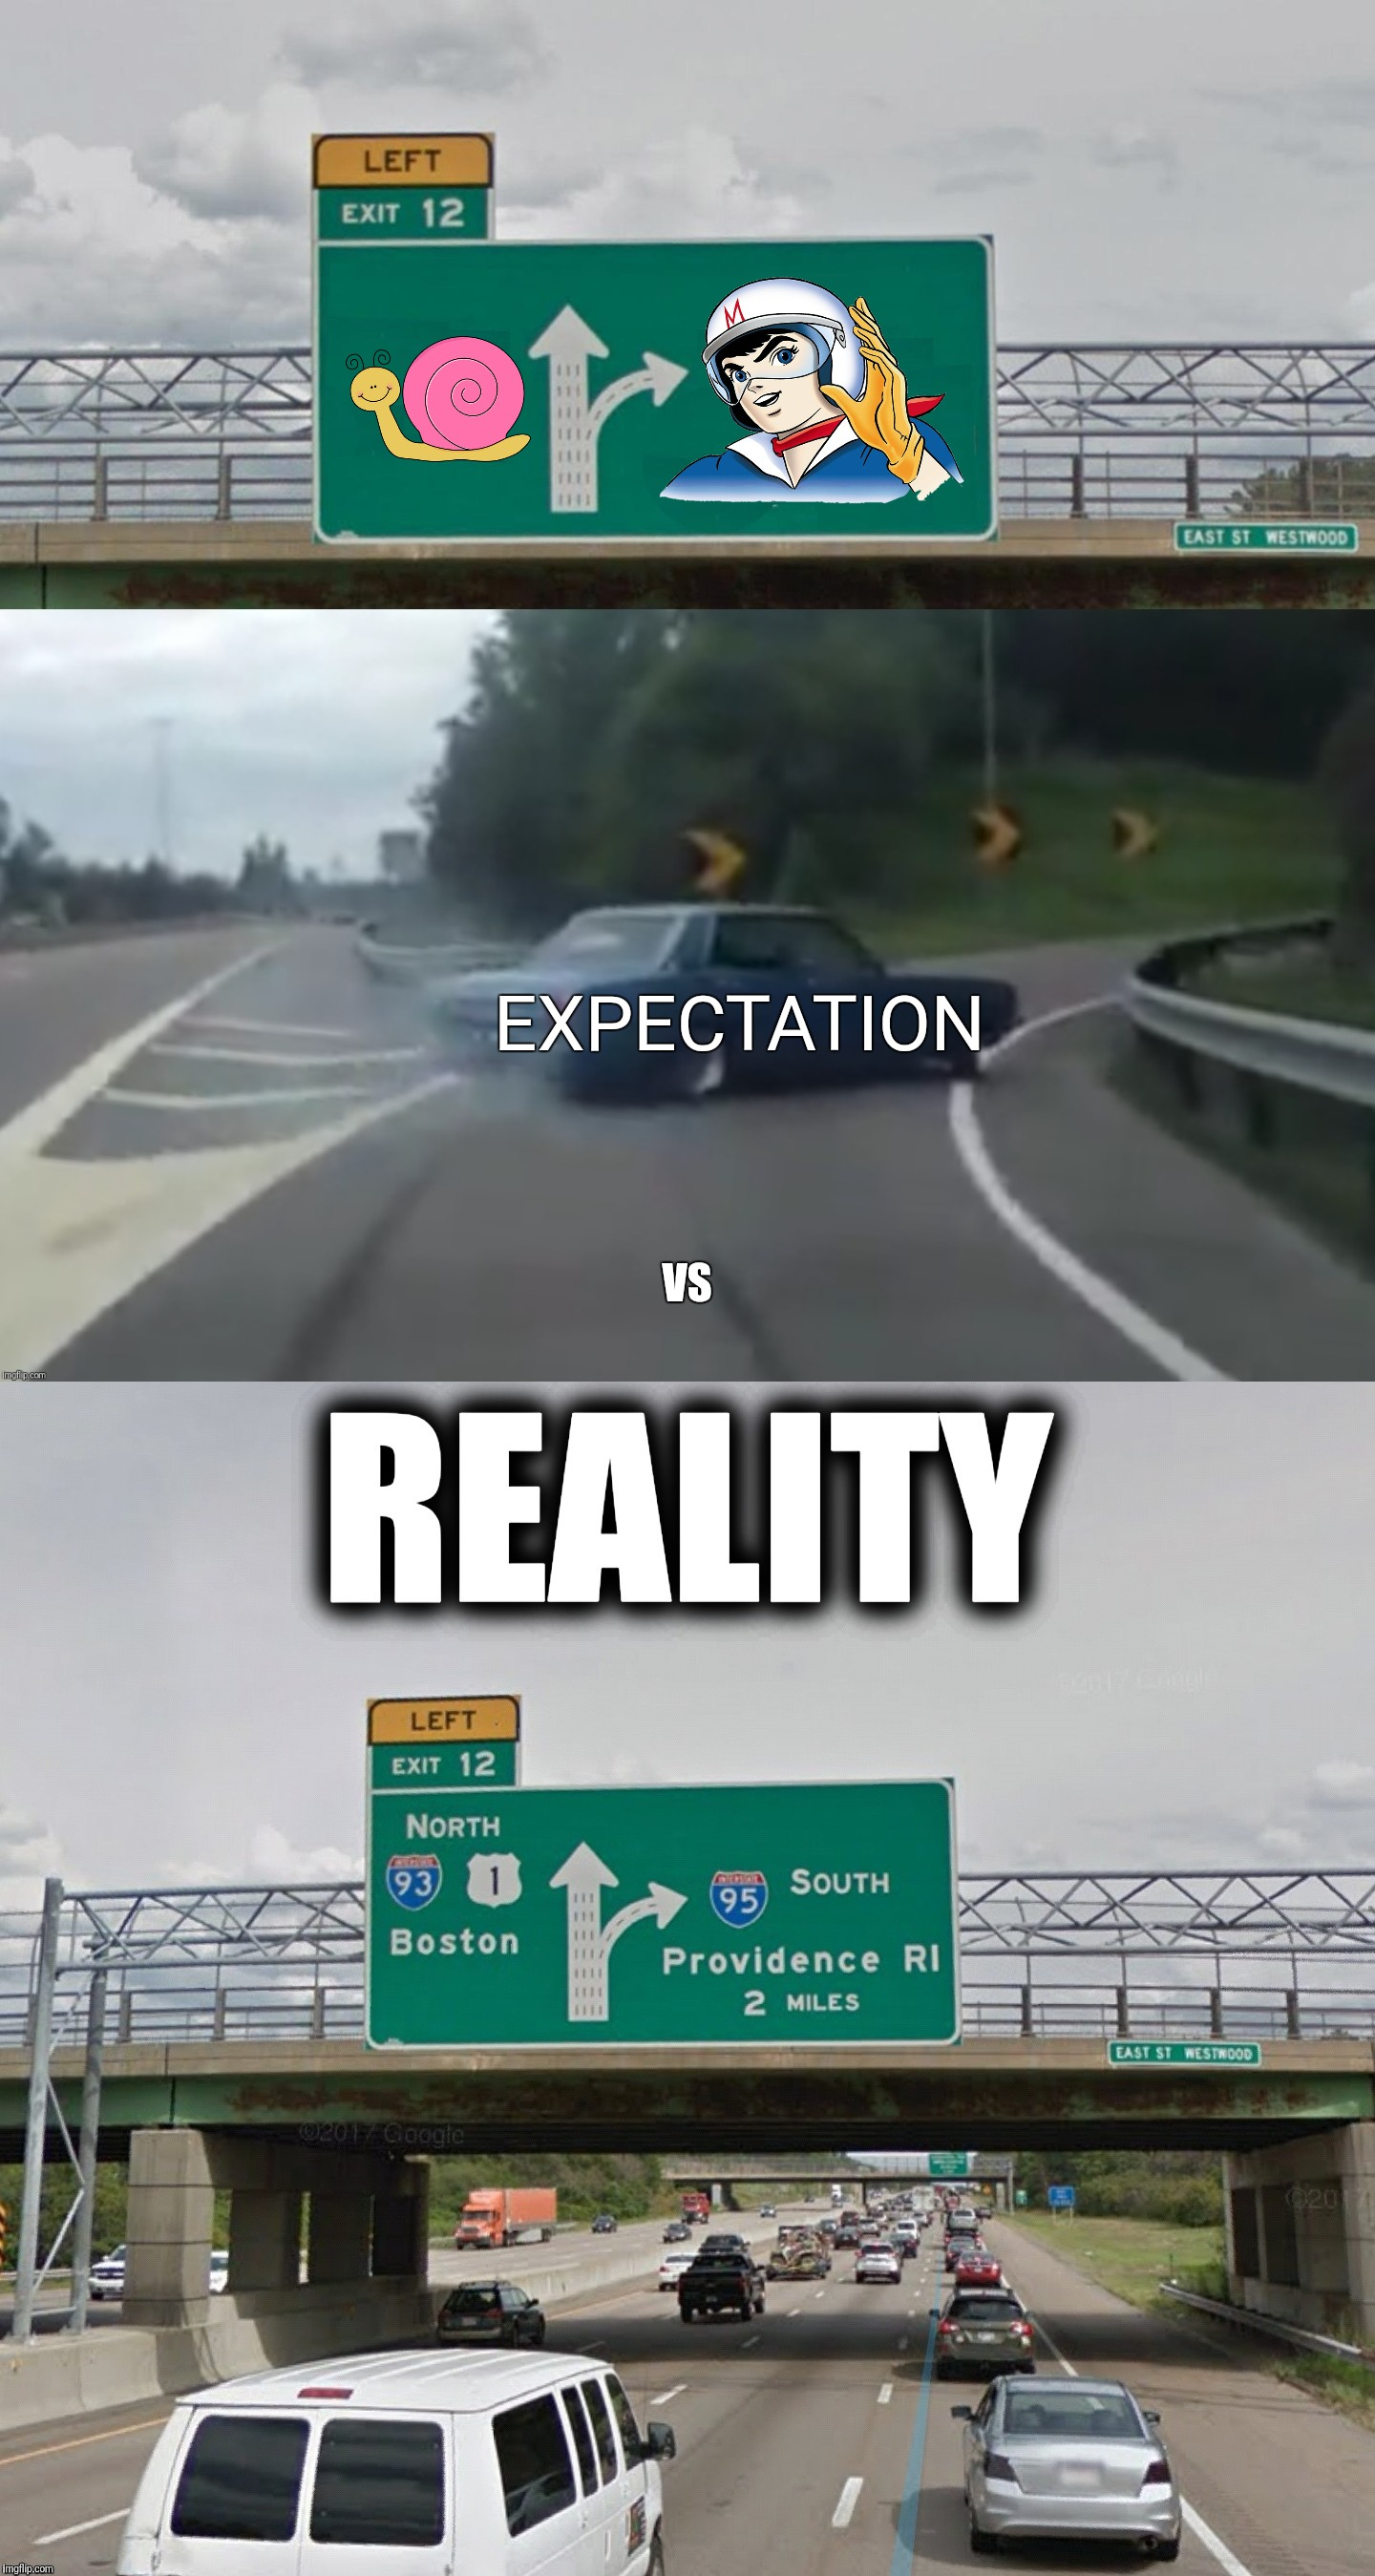 Taking an untested shortcut during rush hour | EXPECTATION REALITY VS | image tagged in left exit 12 off ramp,car left exit 12,expectation vs reality,snail,speed racer,rush hour | made w/ Imgflip meme maker